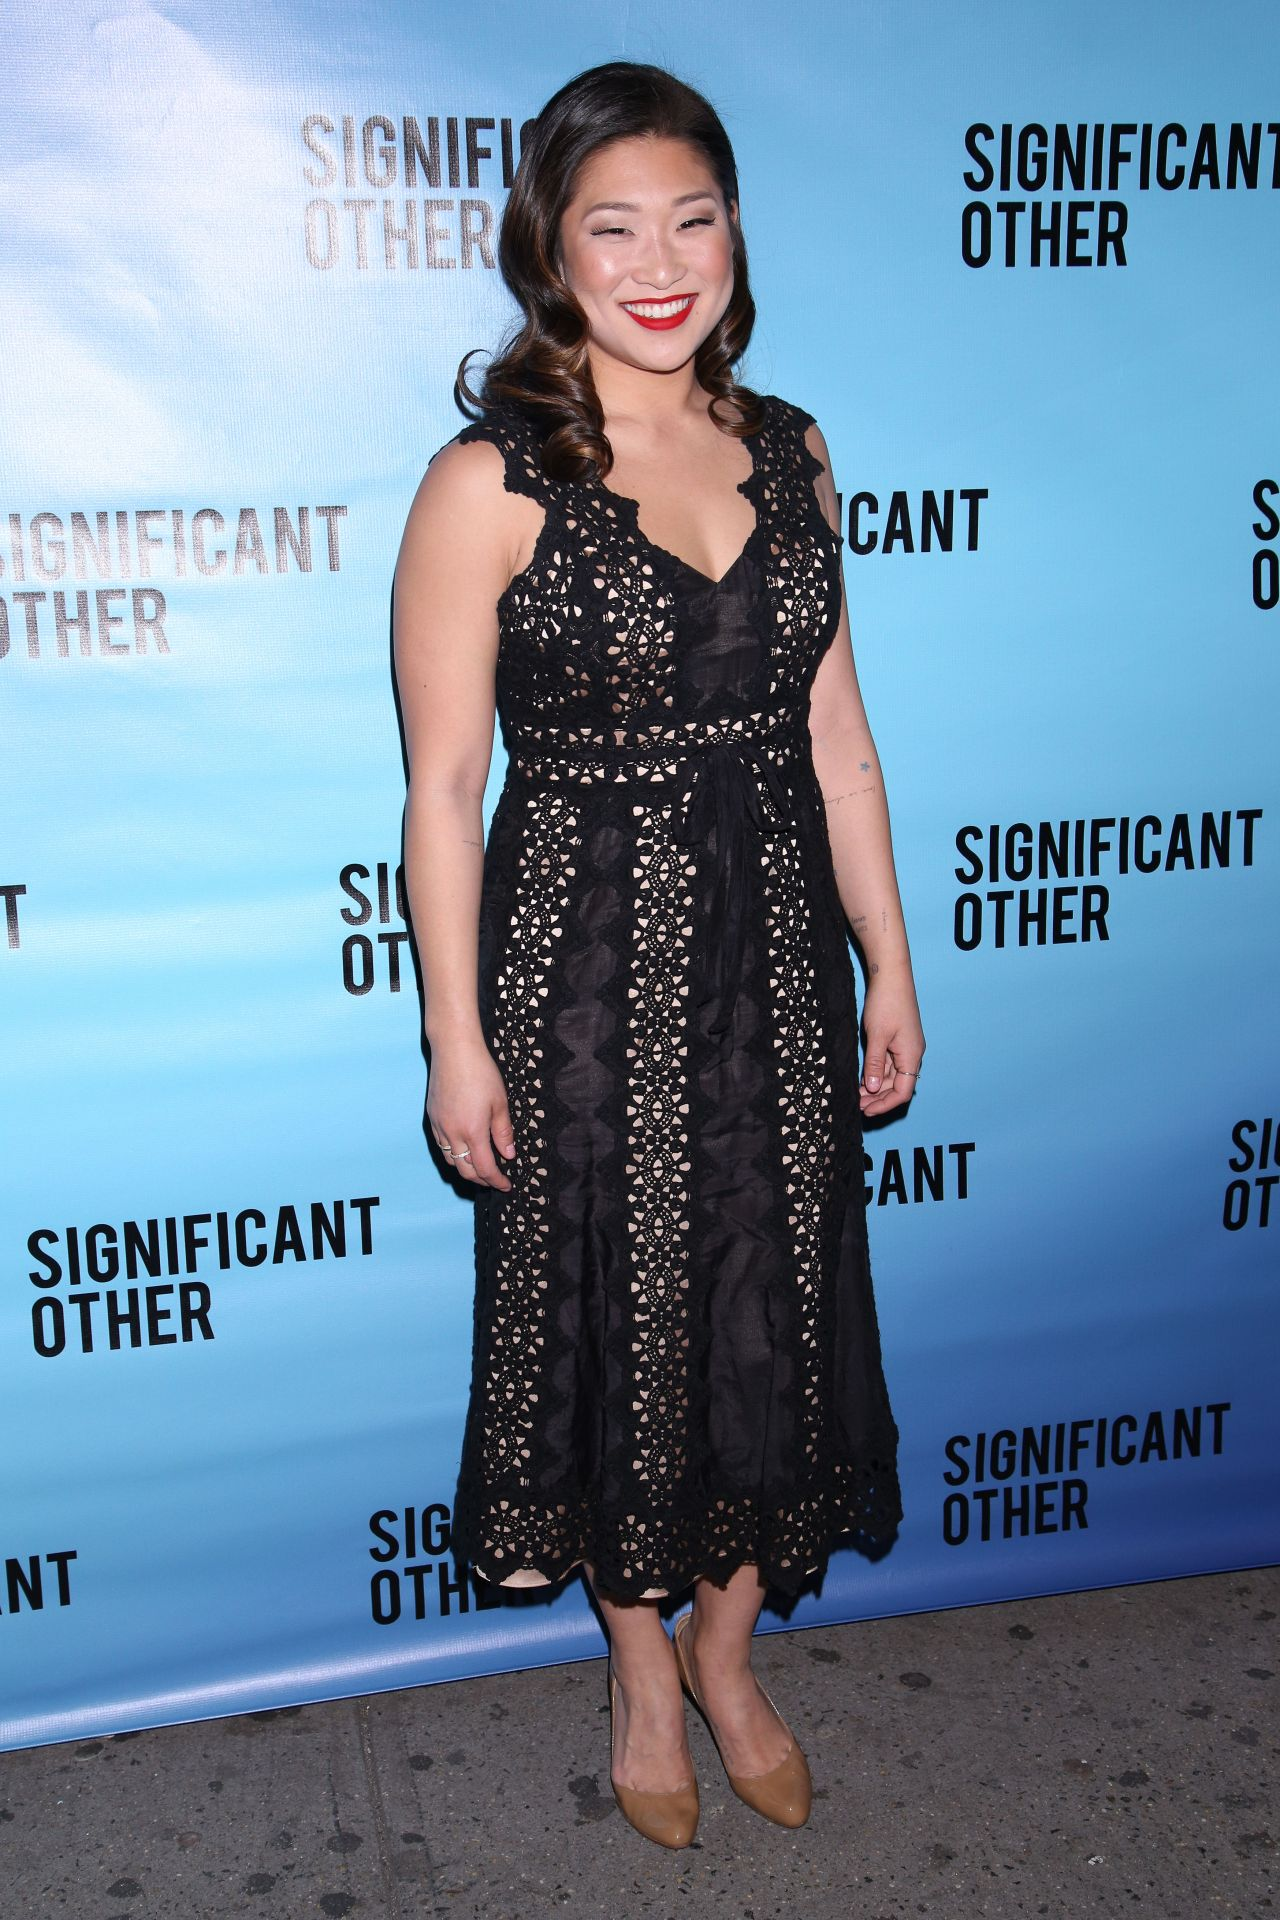 Jenna Ushkowitz at Broadway Opening Night Performance for